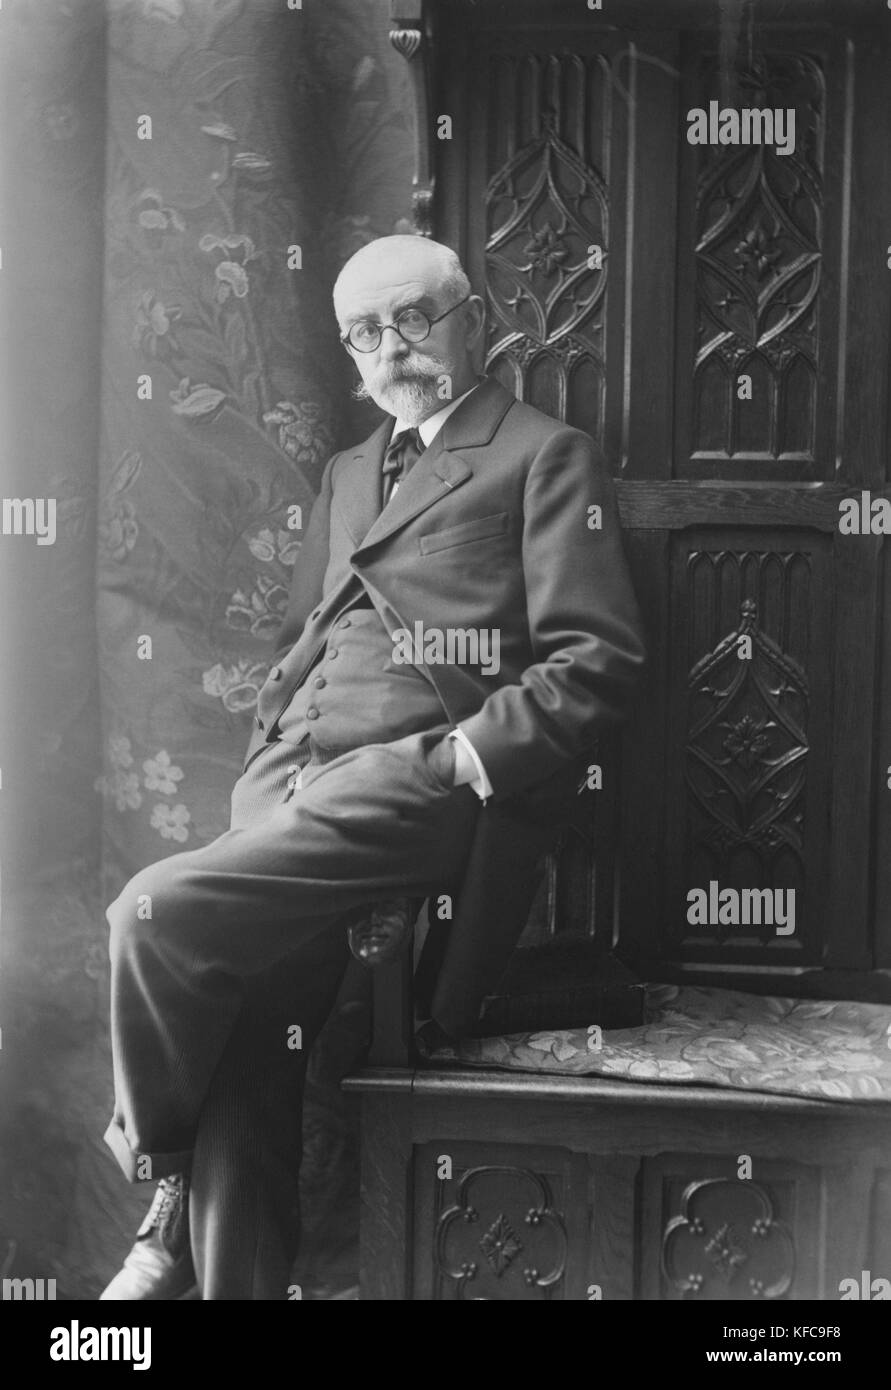 Joris Karl Huysmans (1848-1907)  French writer   Boissonas and Taponier Photo  Photo12.com - Coll. Taponier Stock Photo